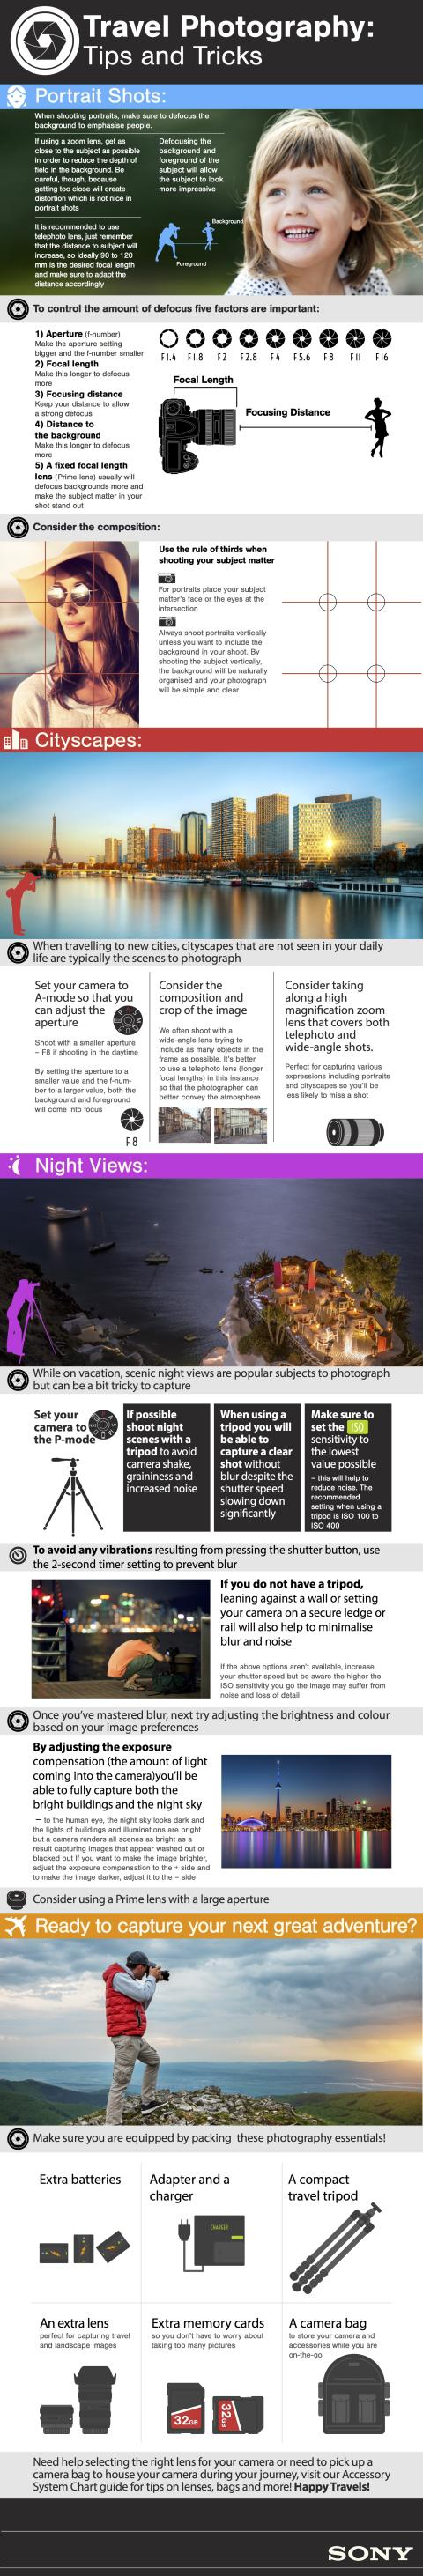 Travel Photography Infographic